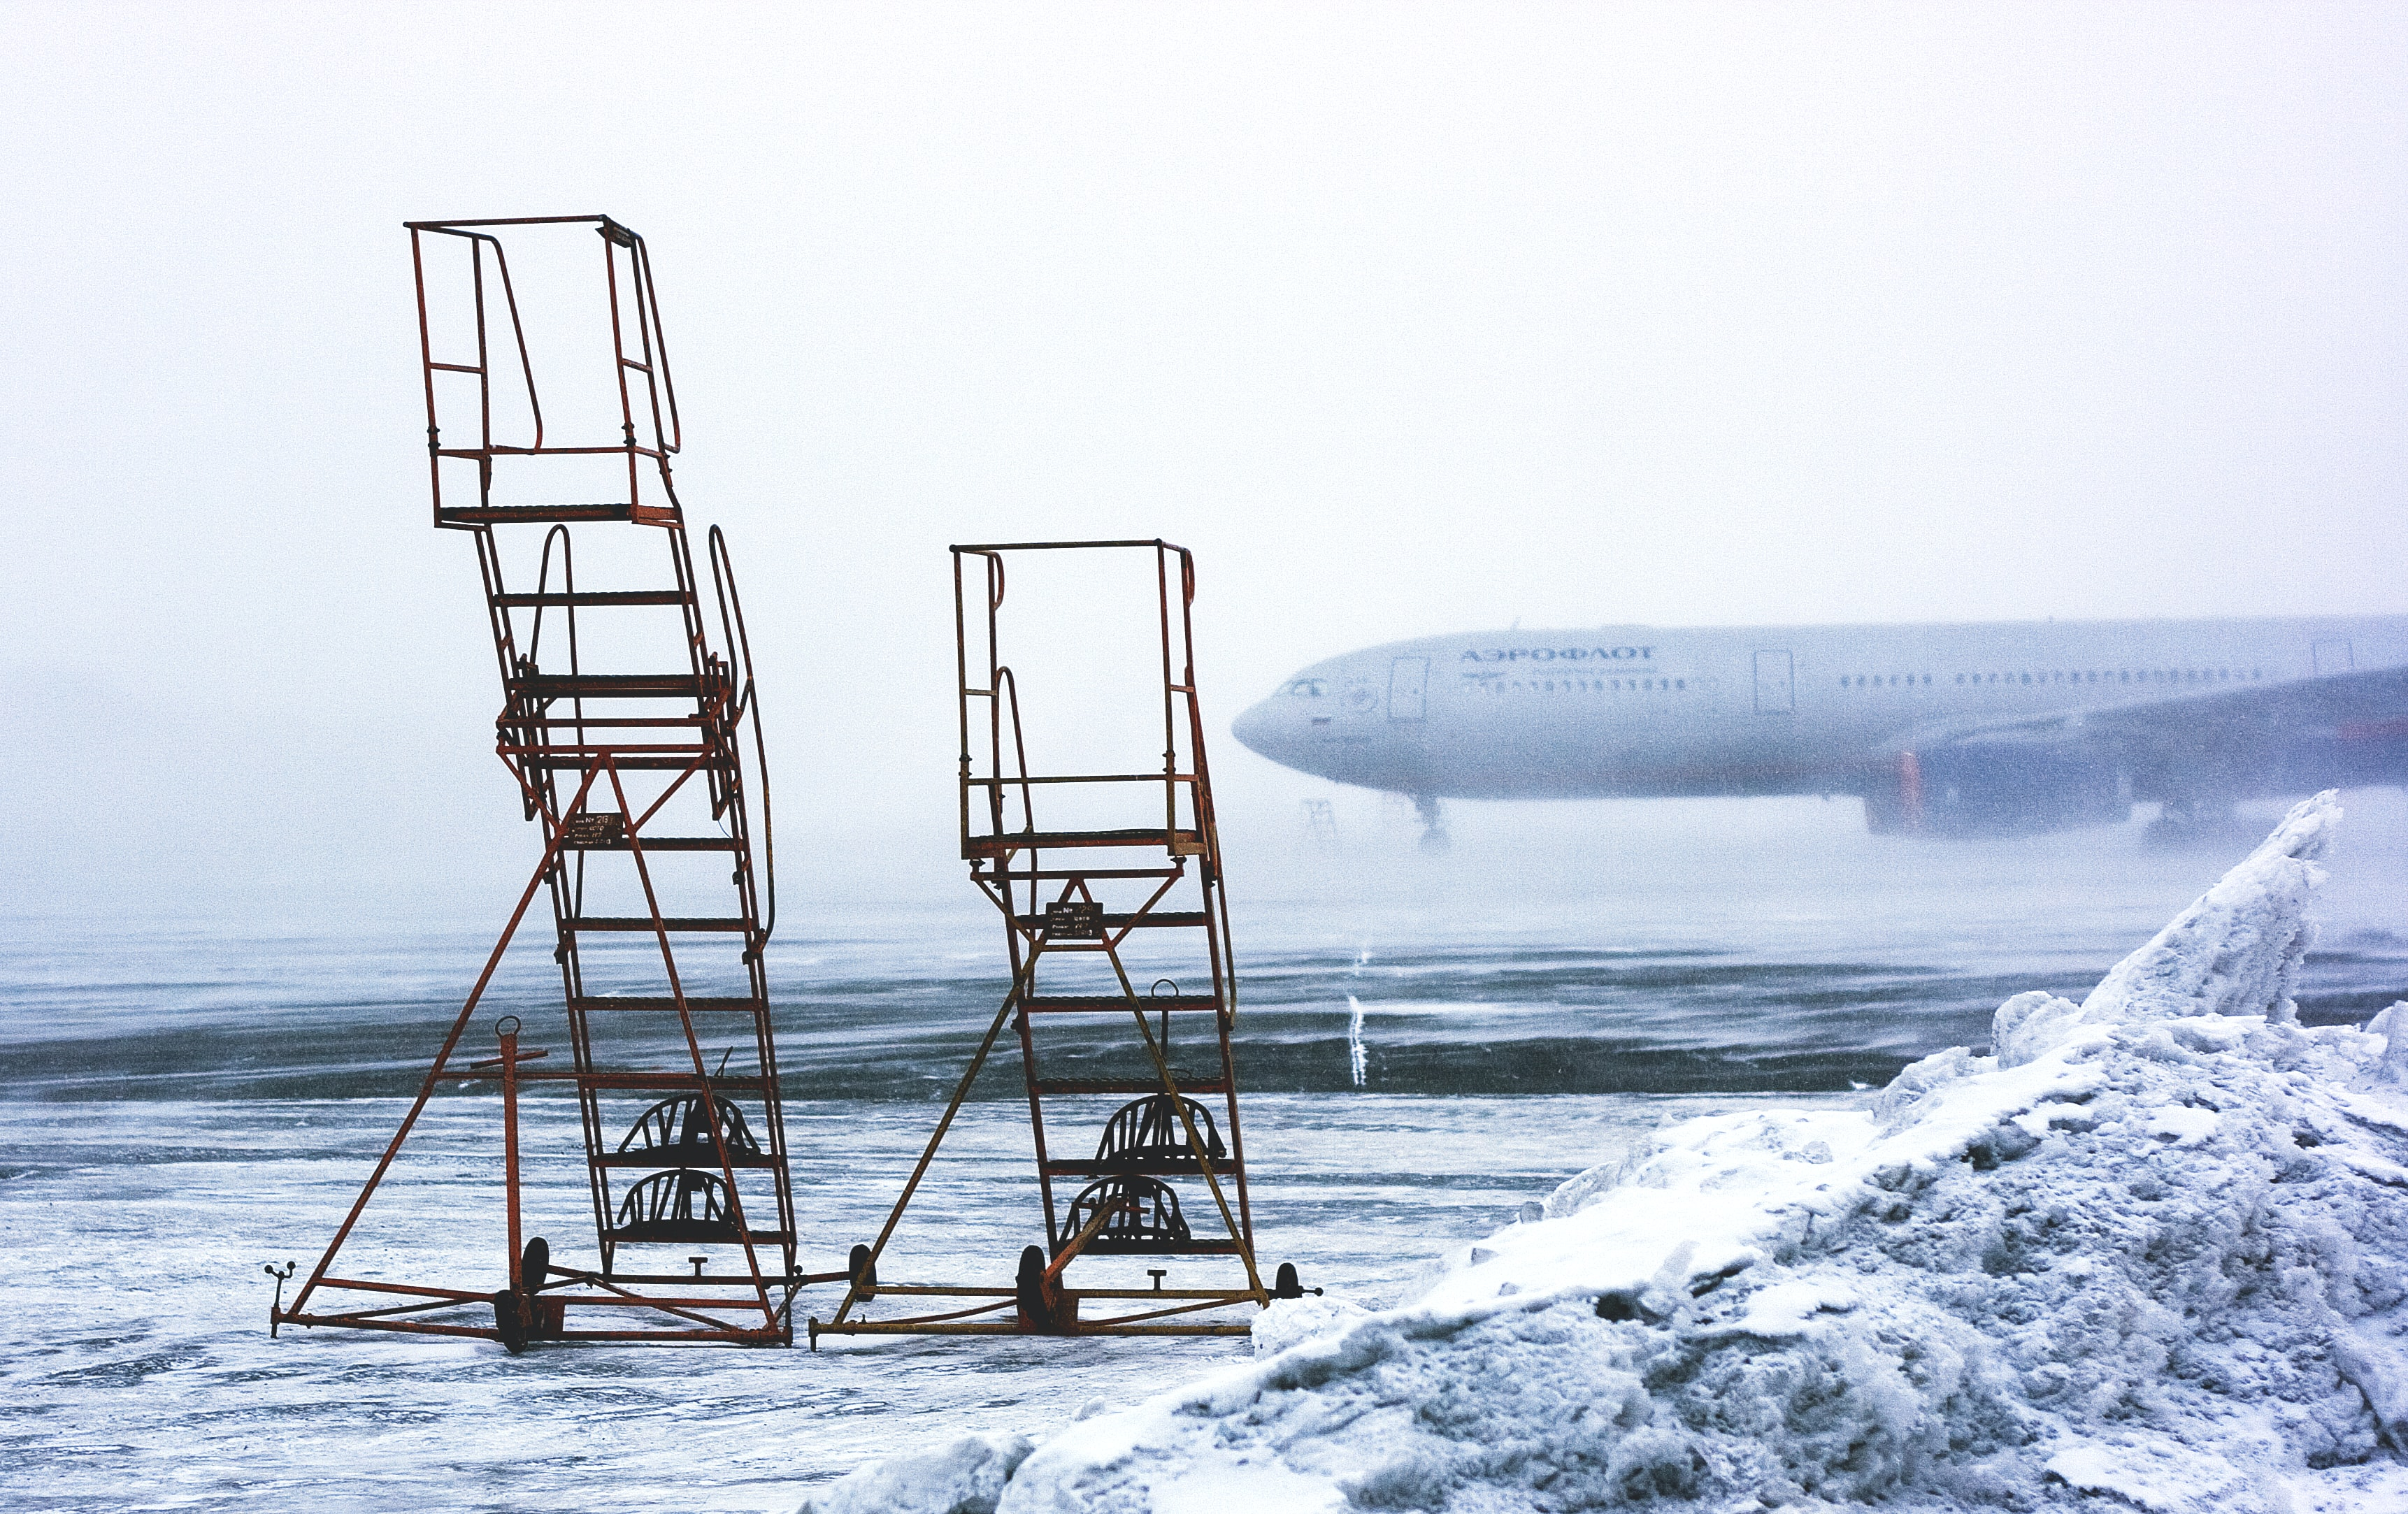 Two sets of airstairs sit next to each other on a frozen tarmac; a grounded plane is visible in the background